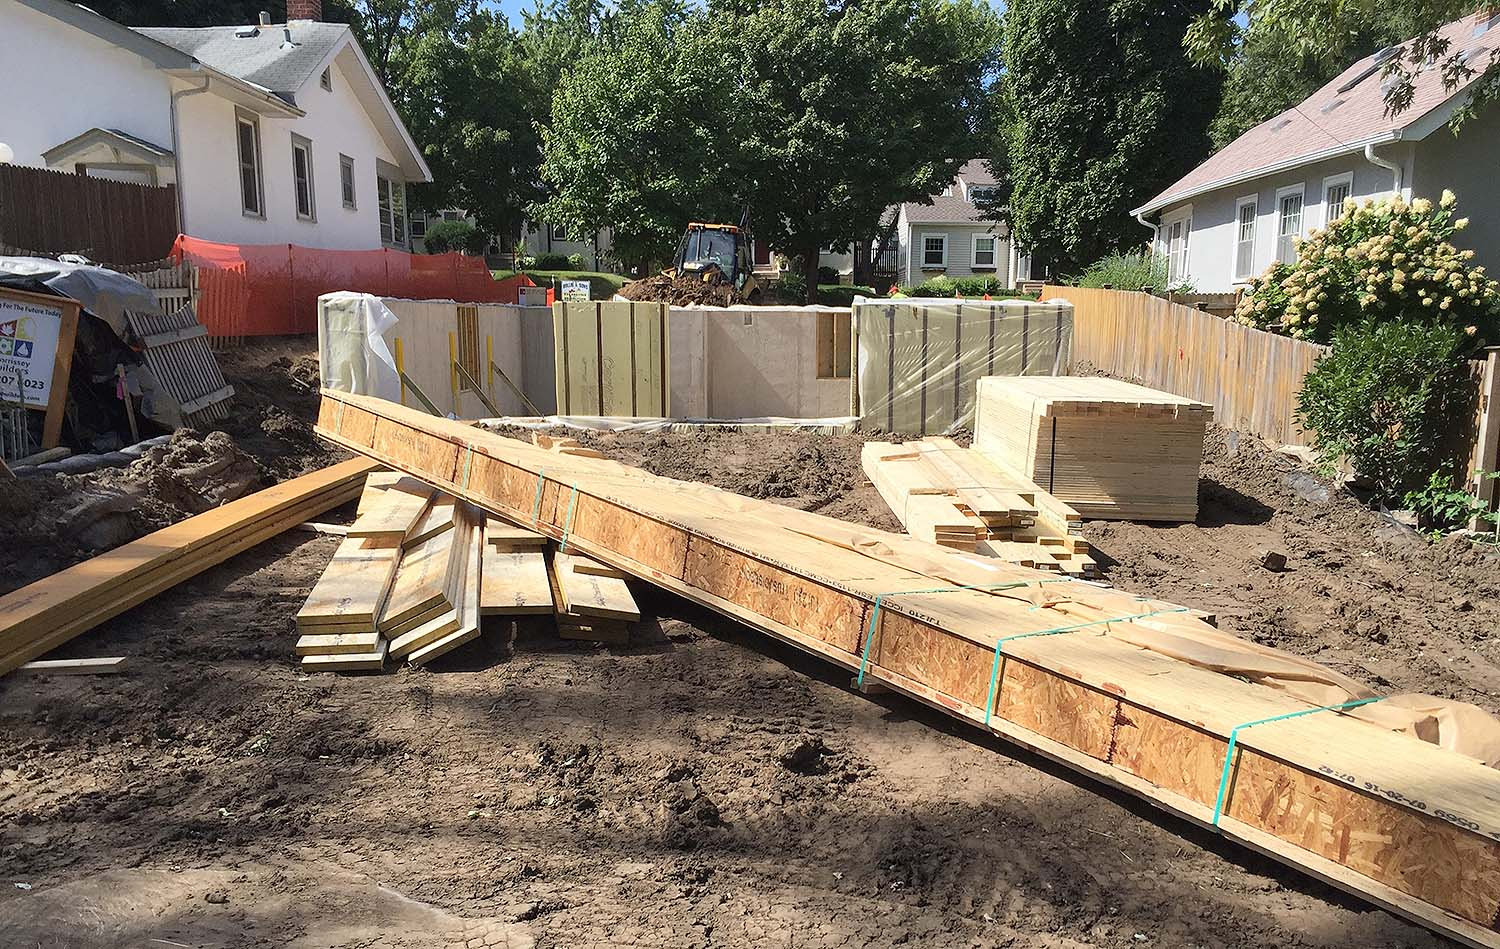 The collection includes engineered wood (LSL rim joists, LVL beams, and I joists with OSB webs), plywood sheets (subfloor),and solid lumber (treated 2x6 sill plates, 2x10 headers and dropped framing, and 2x4's for miscellaneous wall framing).